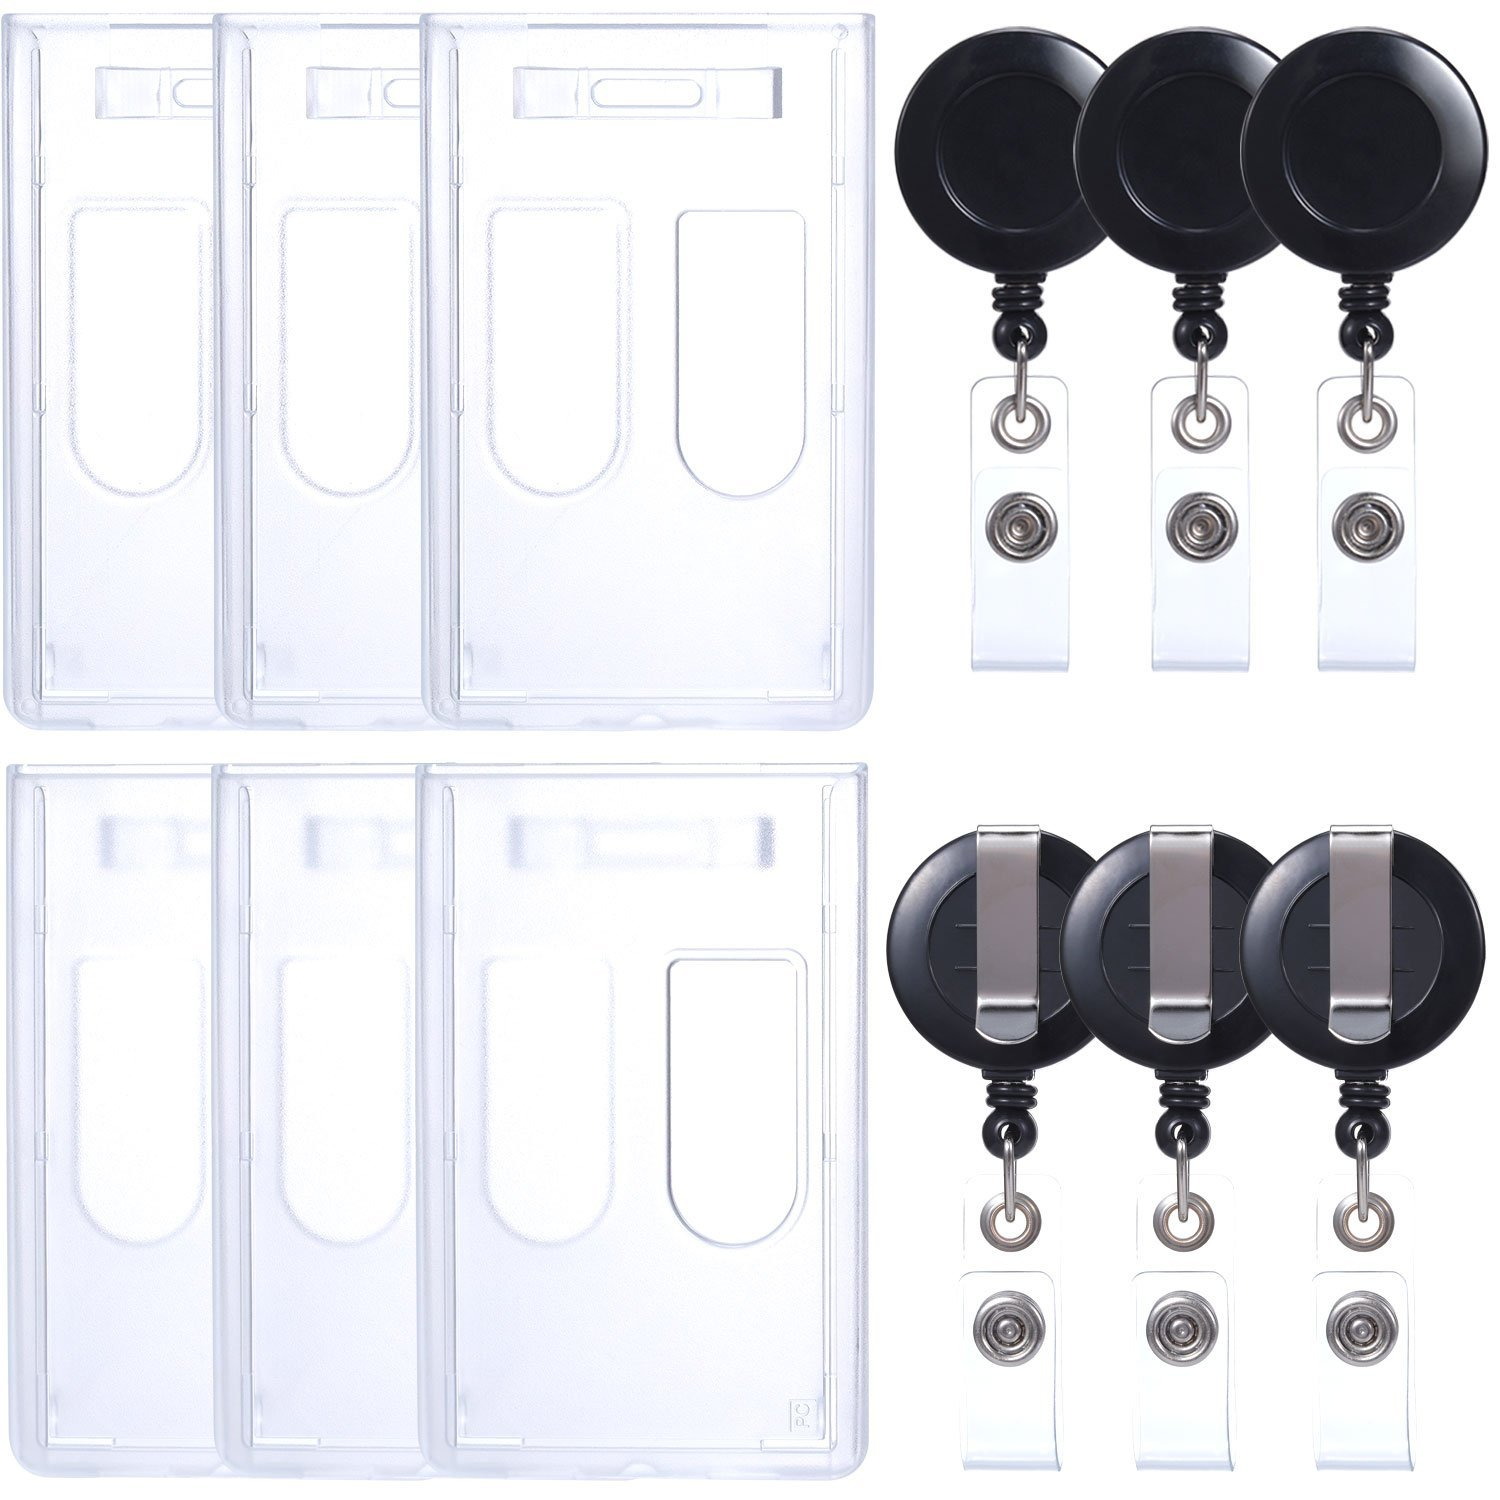 SATINIOR 6 Pair Retractable Double ID Card Slot Heavy Duty Badge Holder for Office Company Employee School Student ID Card